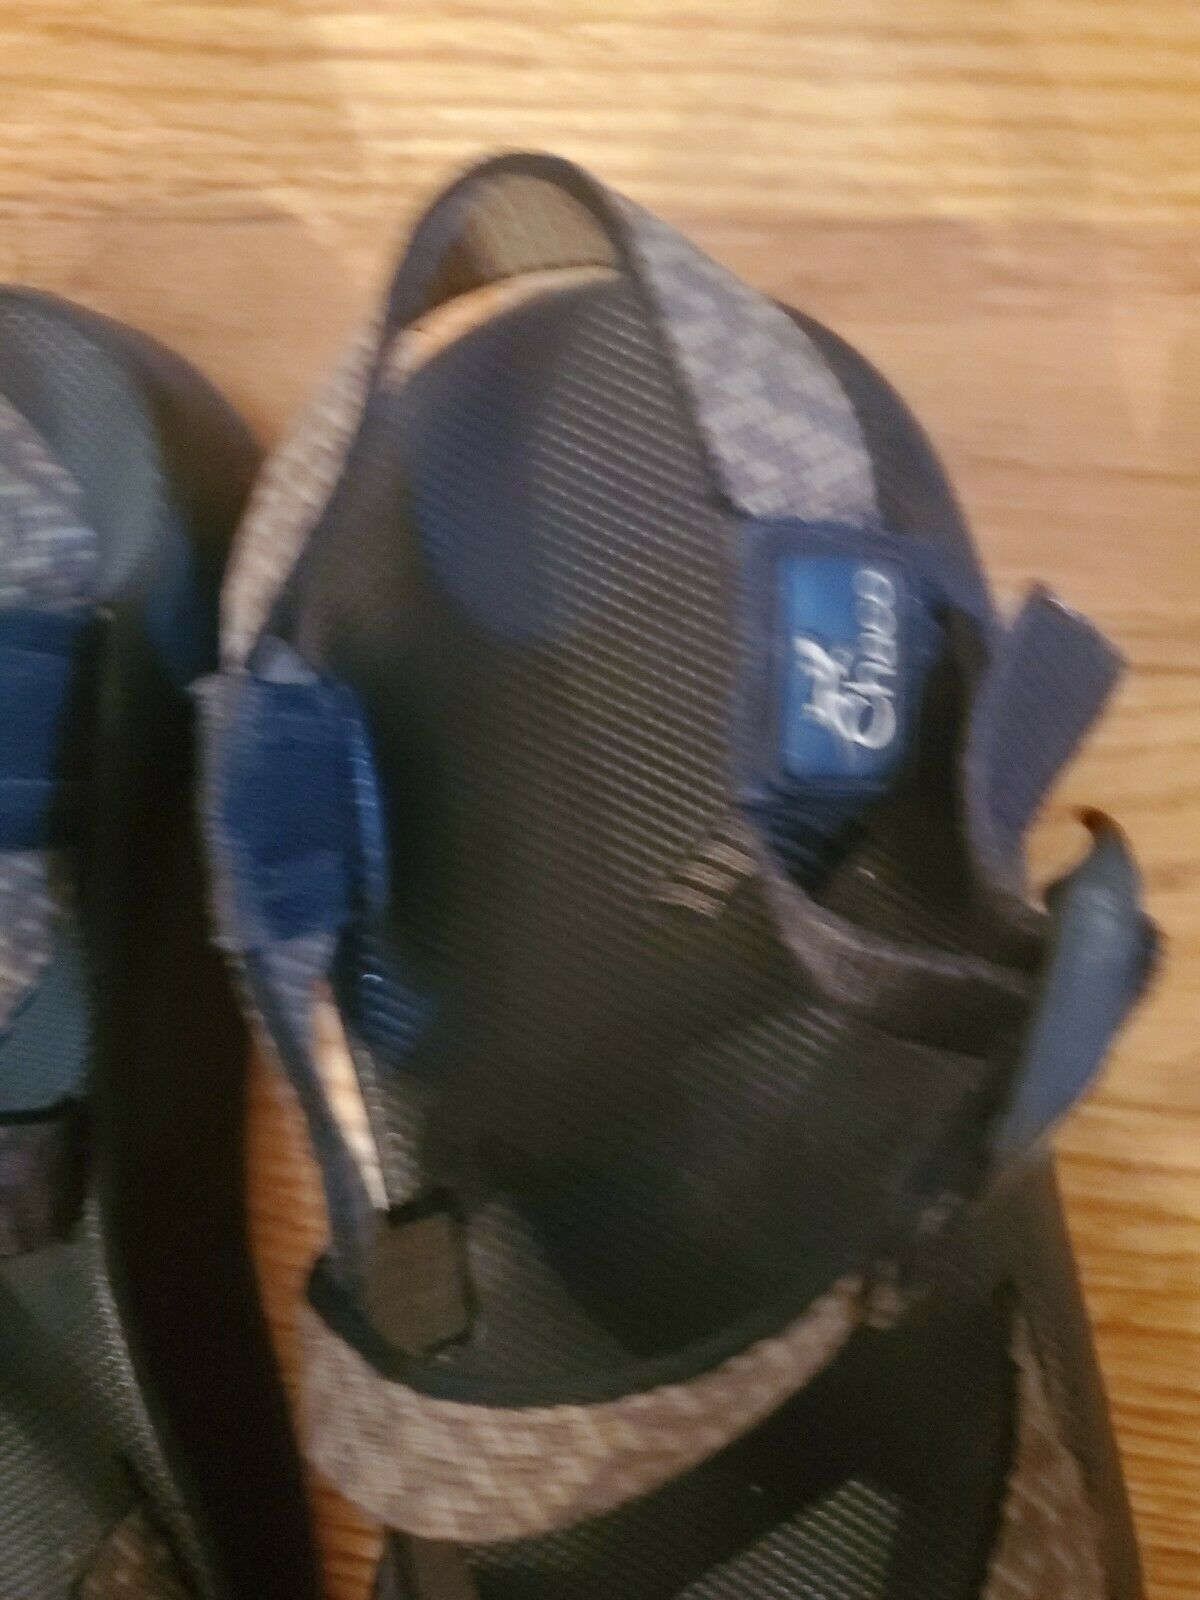 CHACO Women's Size 8 Strappy Sandals - image 4